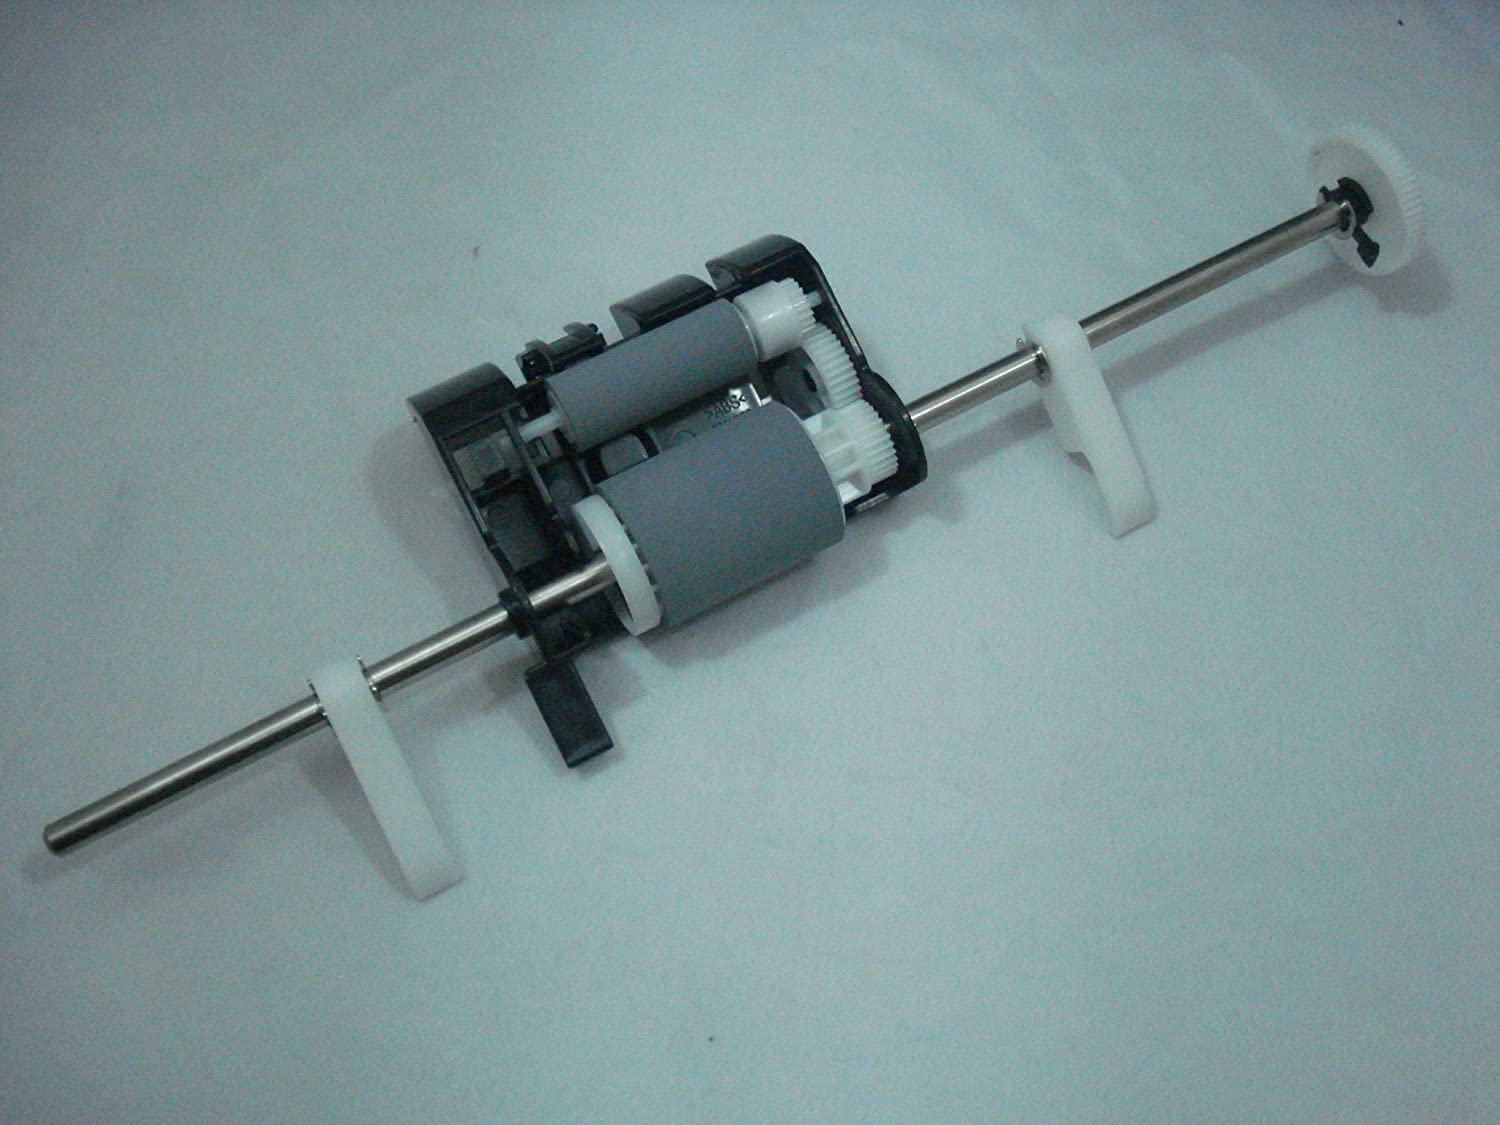 LX9358001 ADF Separation Roller for Brother MFC-8810 8900 Series 8810 Parts